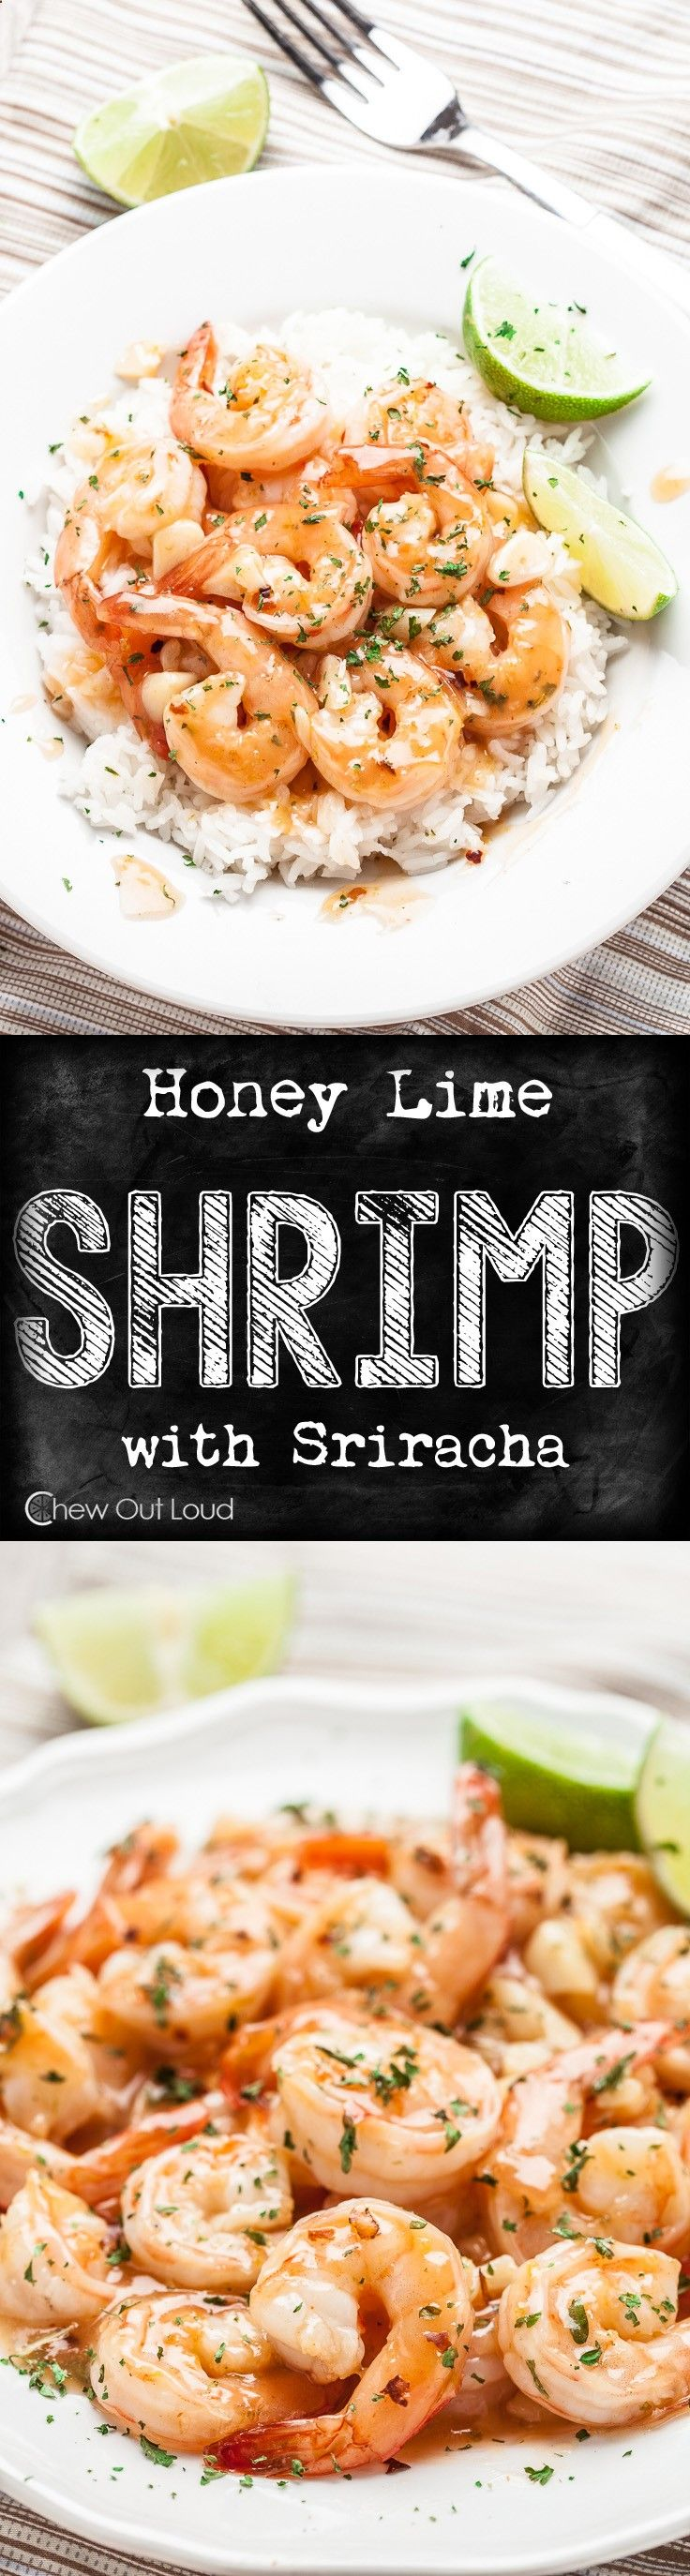 Just 15 minutes and a few simple ingredients will get this succulent shrimp dish on the table. #healthy #seafood #recipe